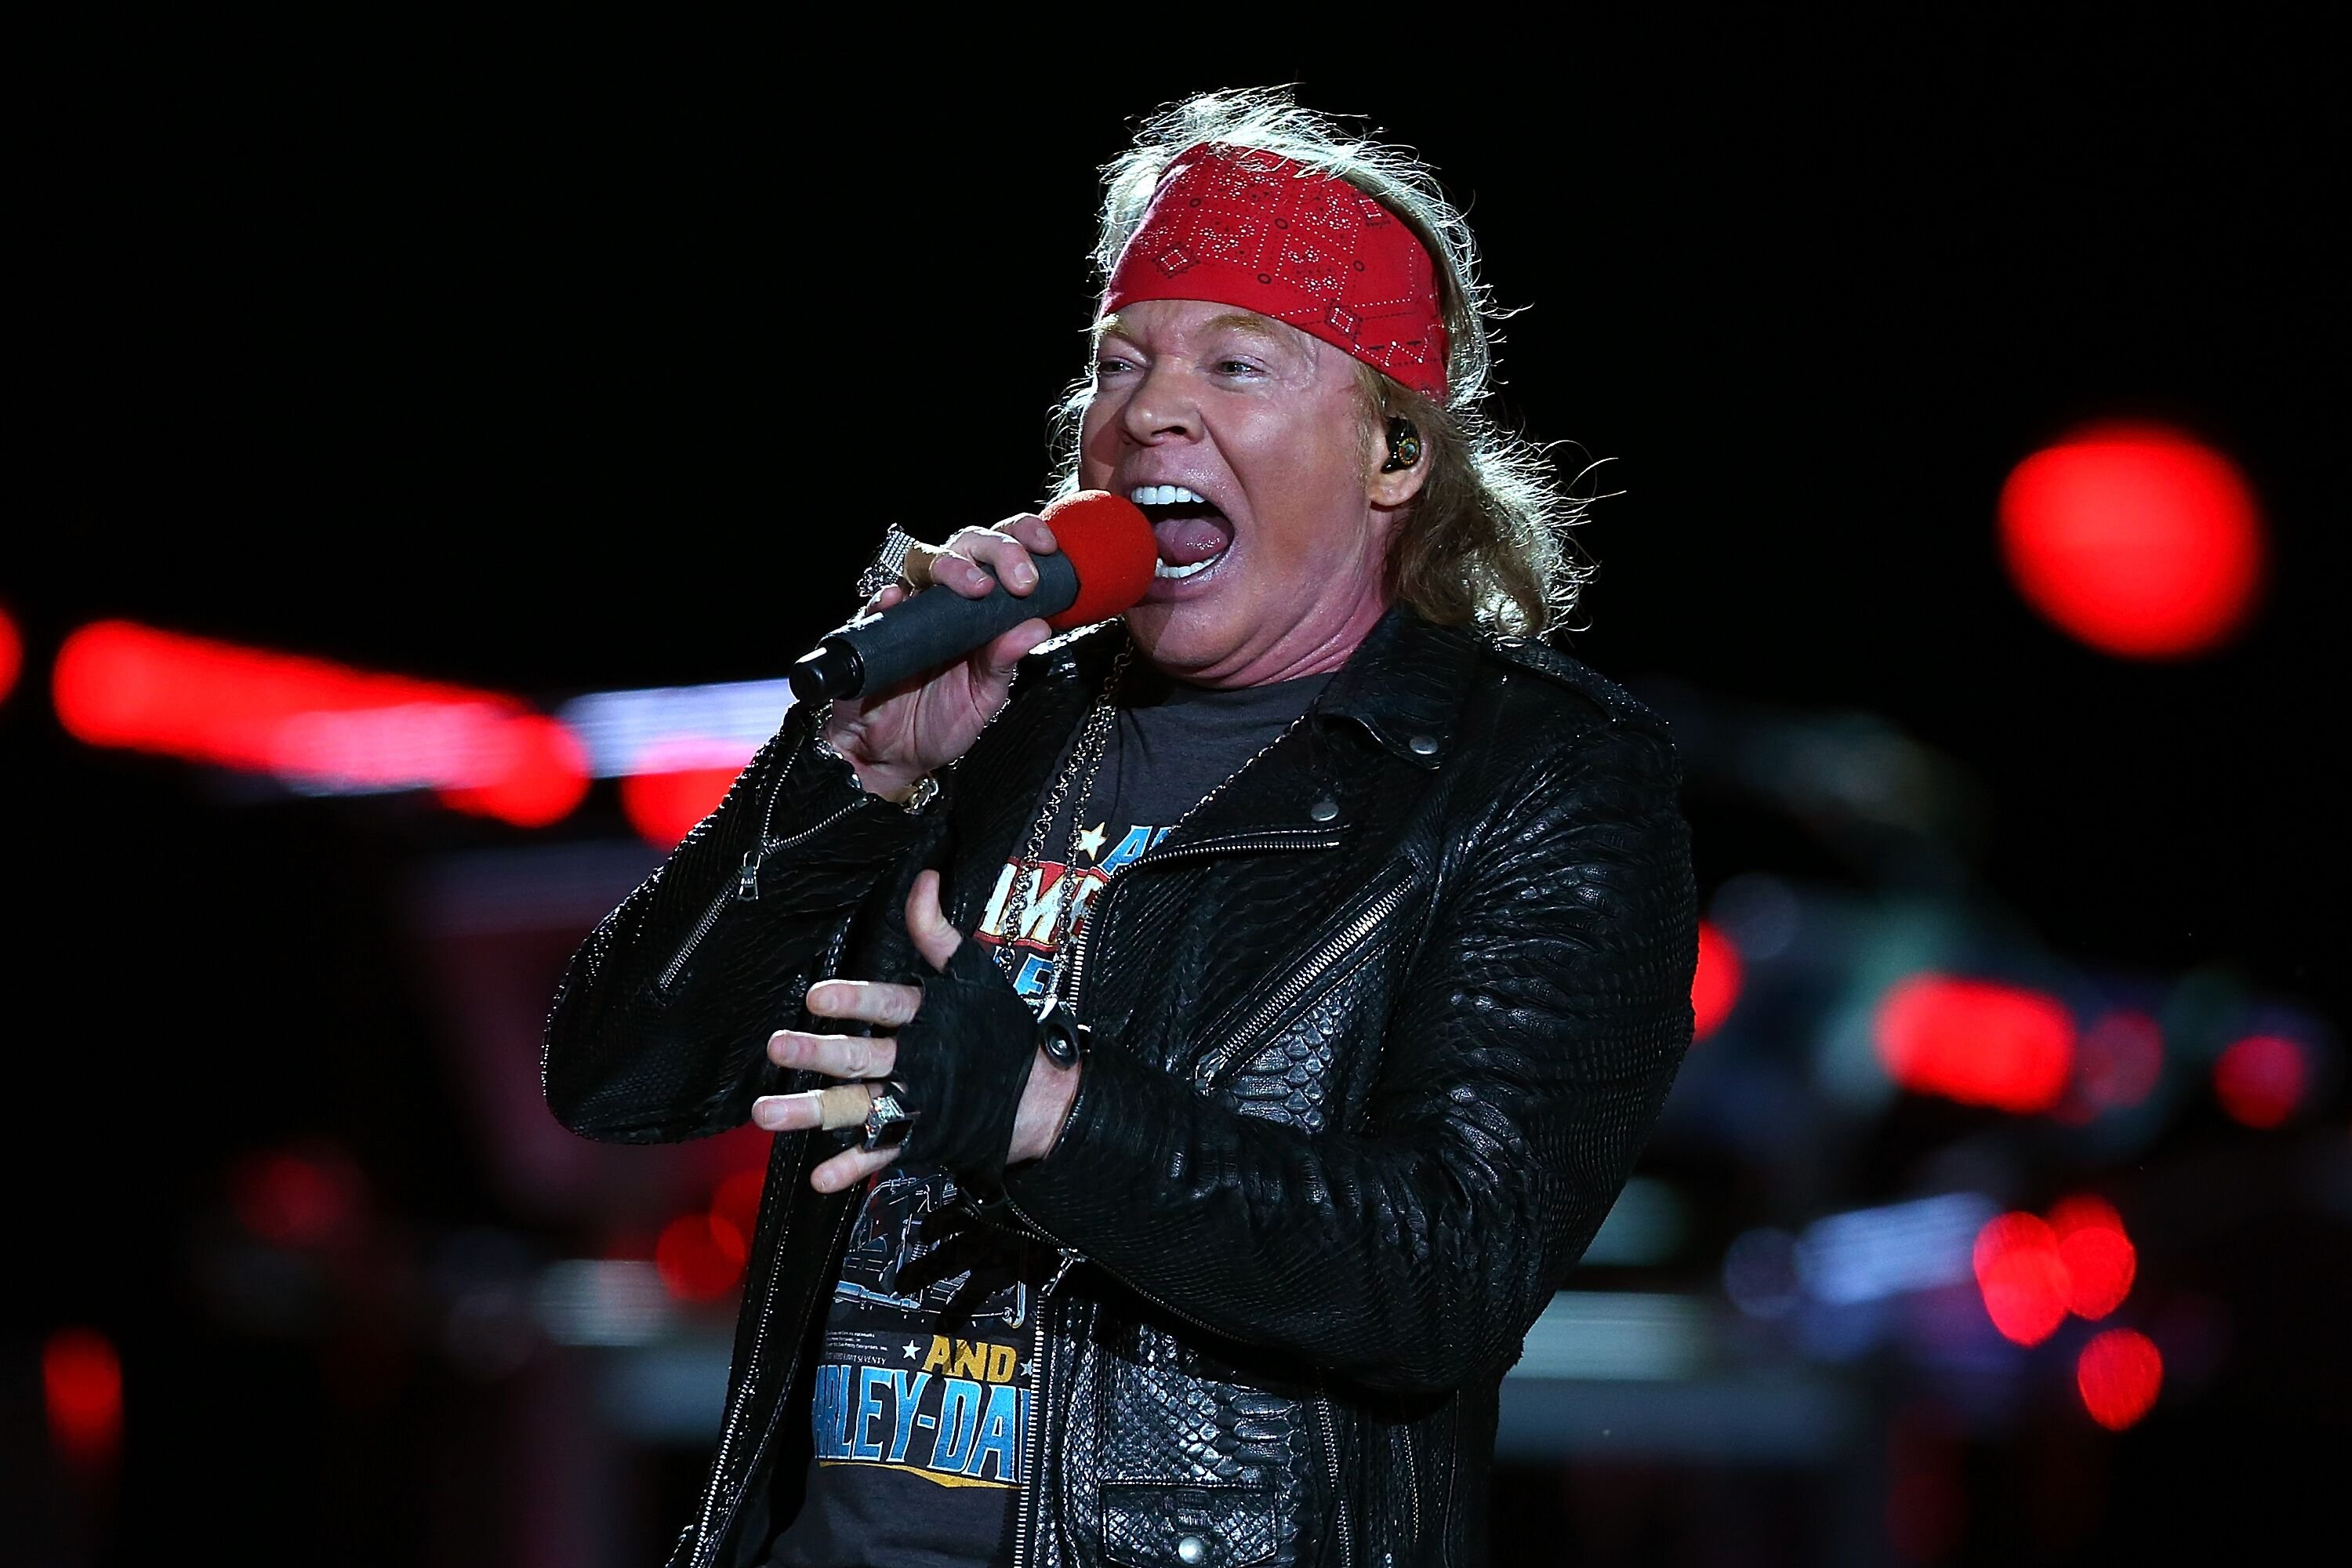 """Axel Rose during the Guns N' Roses """"Not in This Lifetime"""" tour concert at Domain Stadium in Perth, Australia   Photo: Getty Images"""